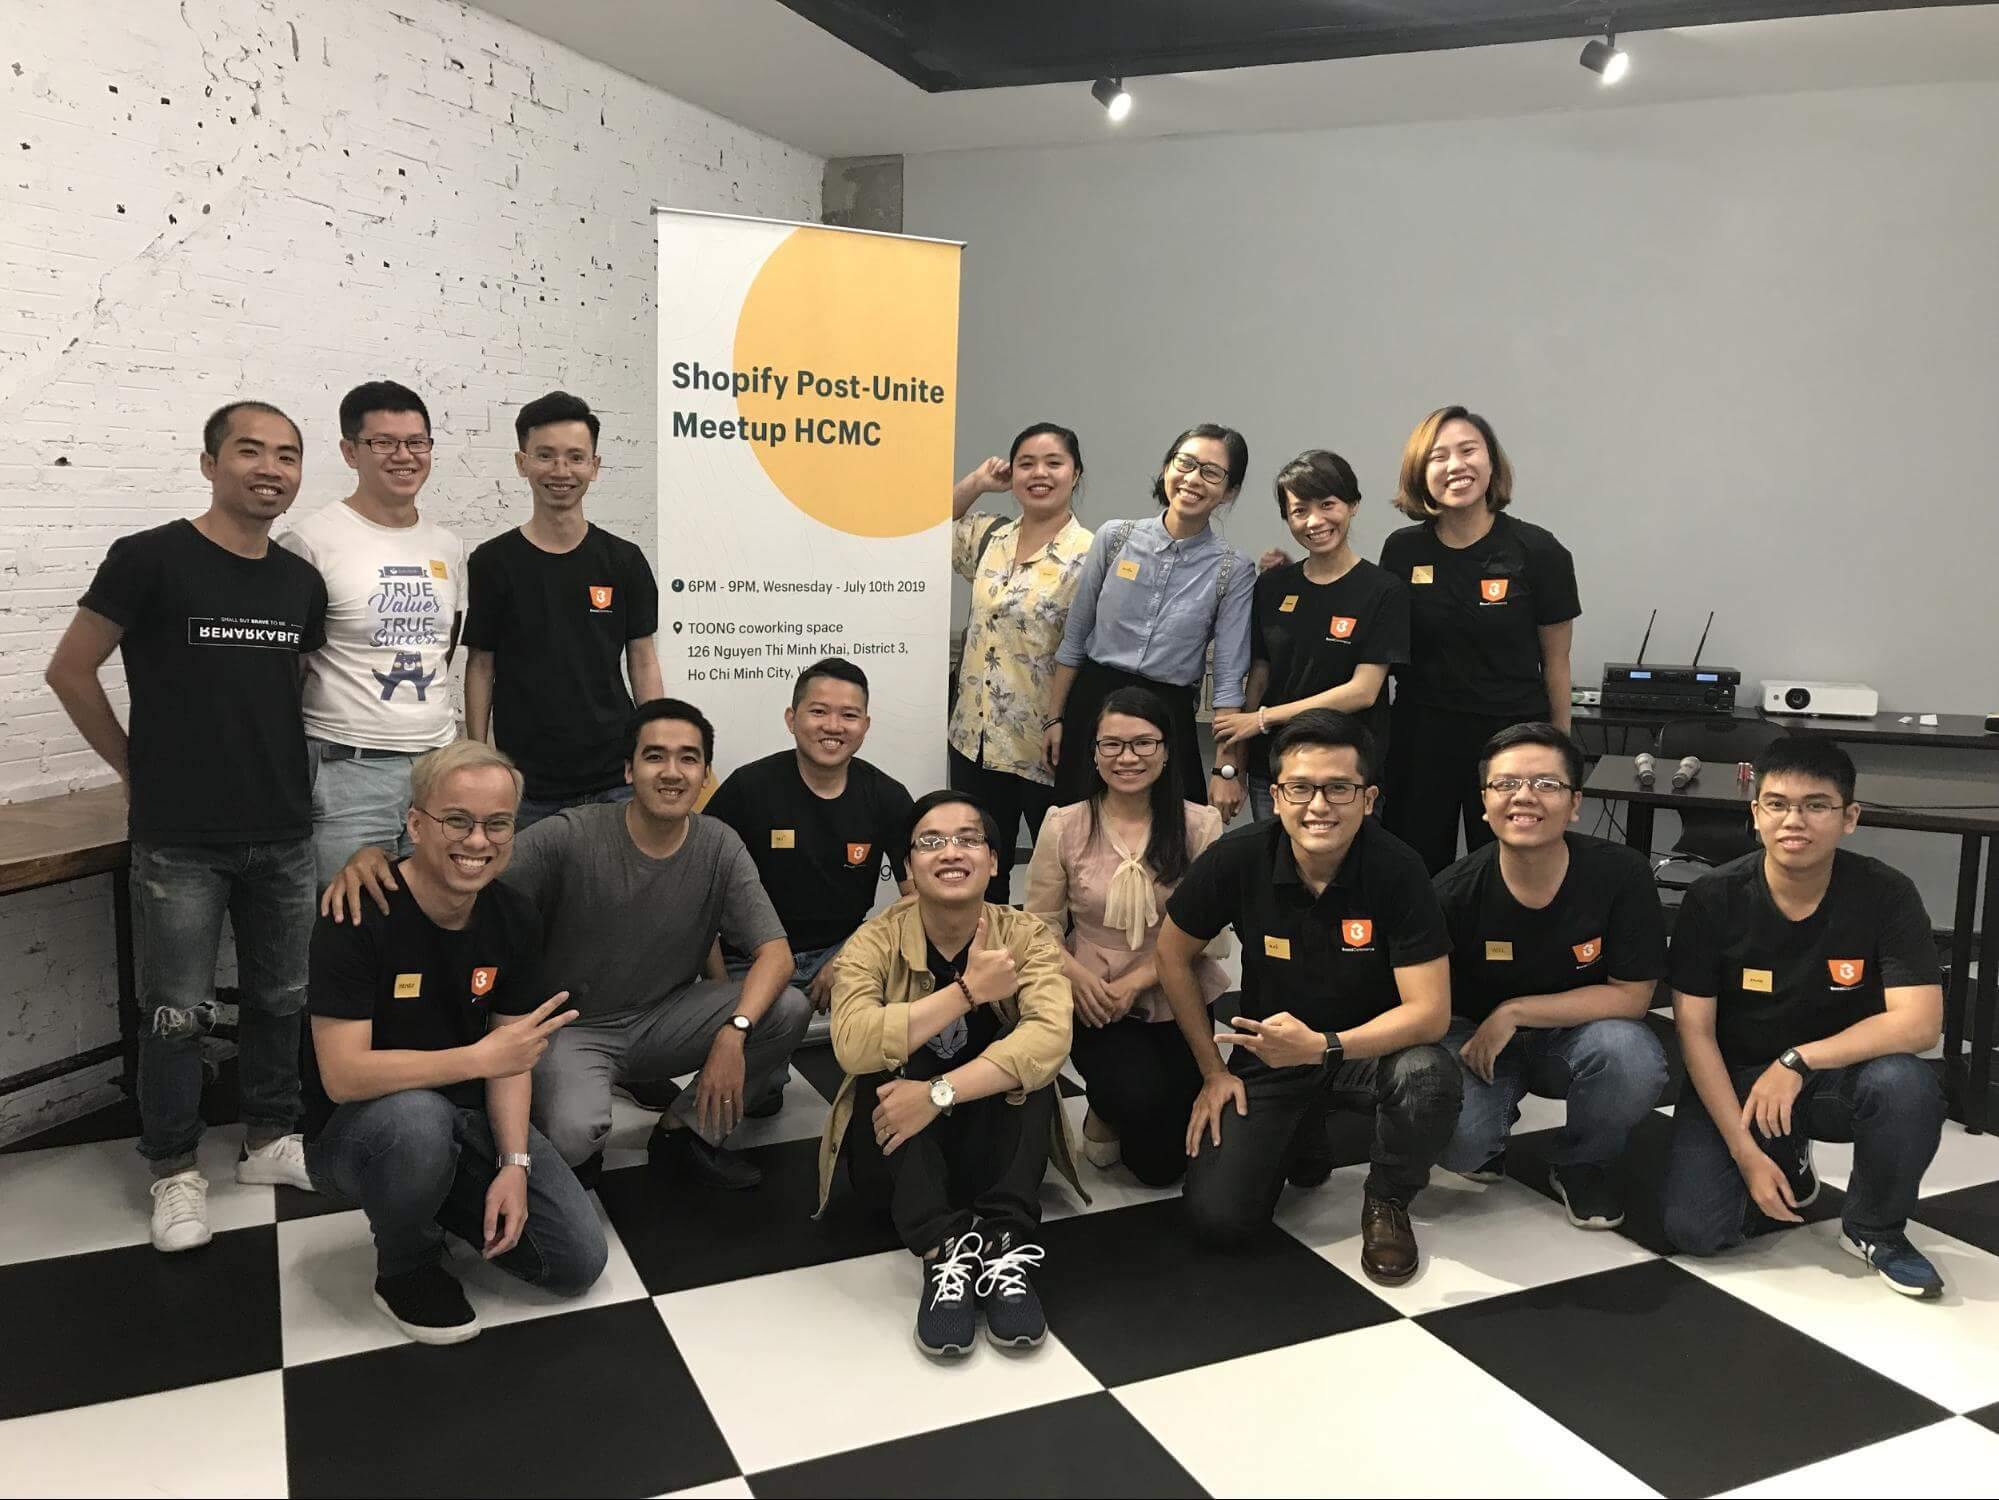 shopify postunite meetup hcmc vietnam boostcommerce